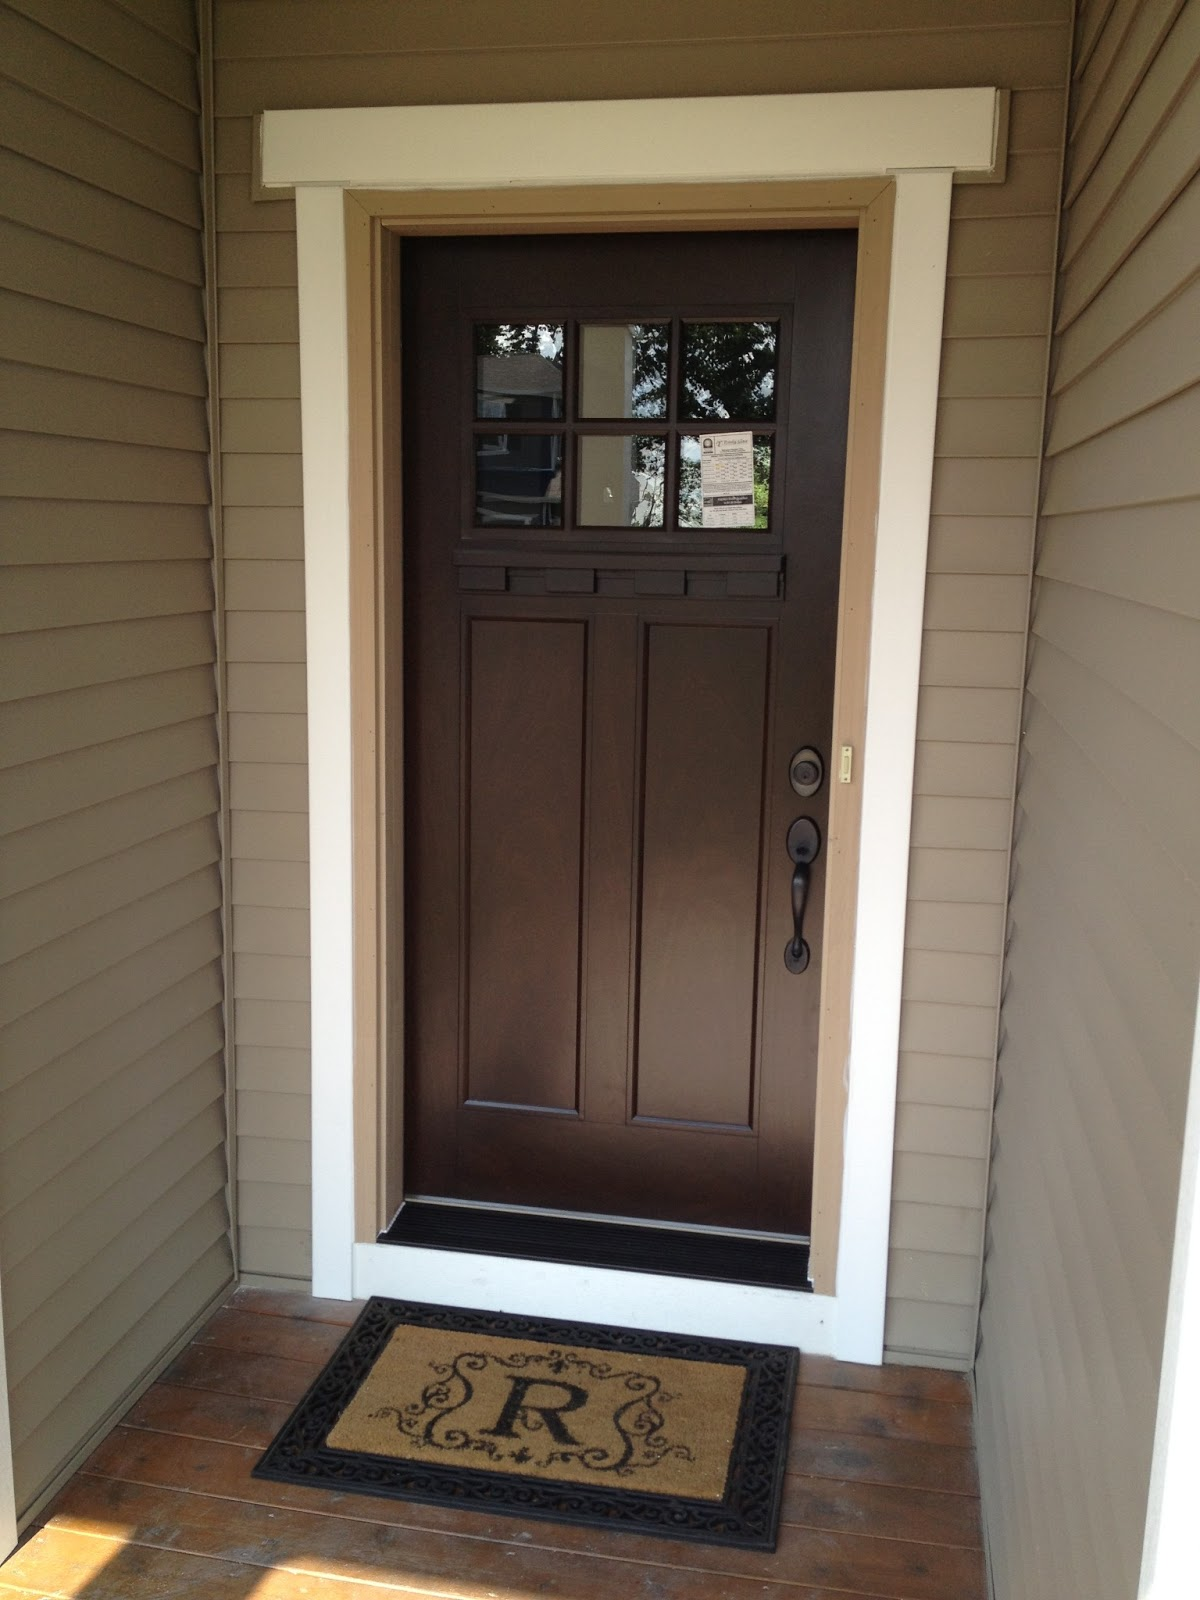 Our styled suburban life new front door - Front door paint colors ...